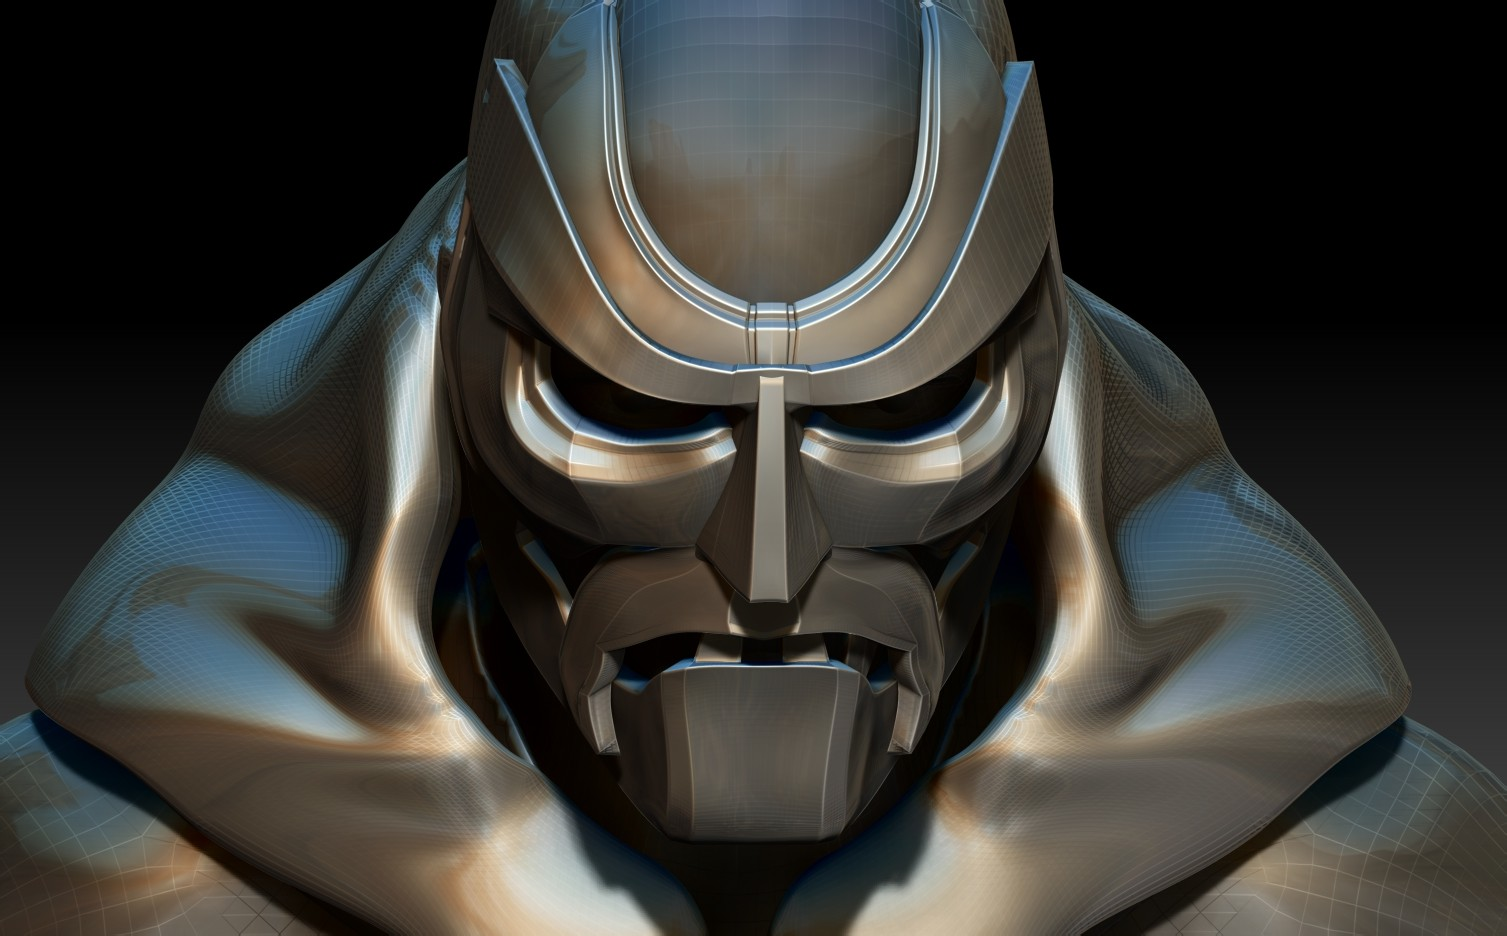 Bradley morgan johnson zbrush document